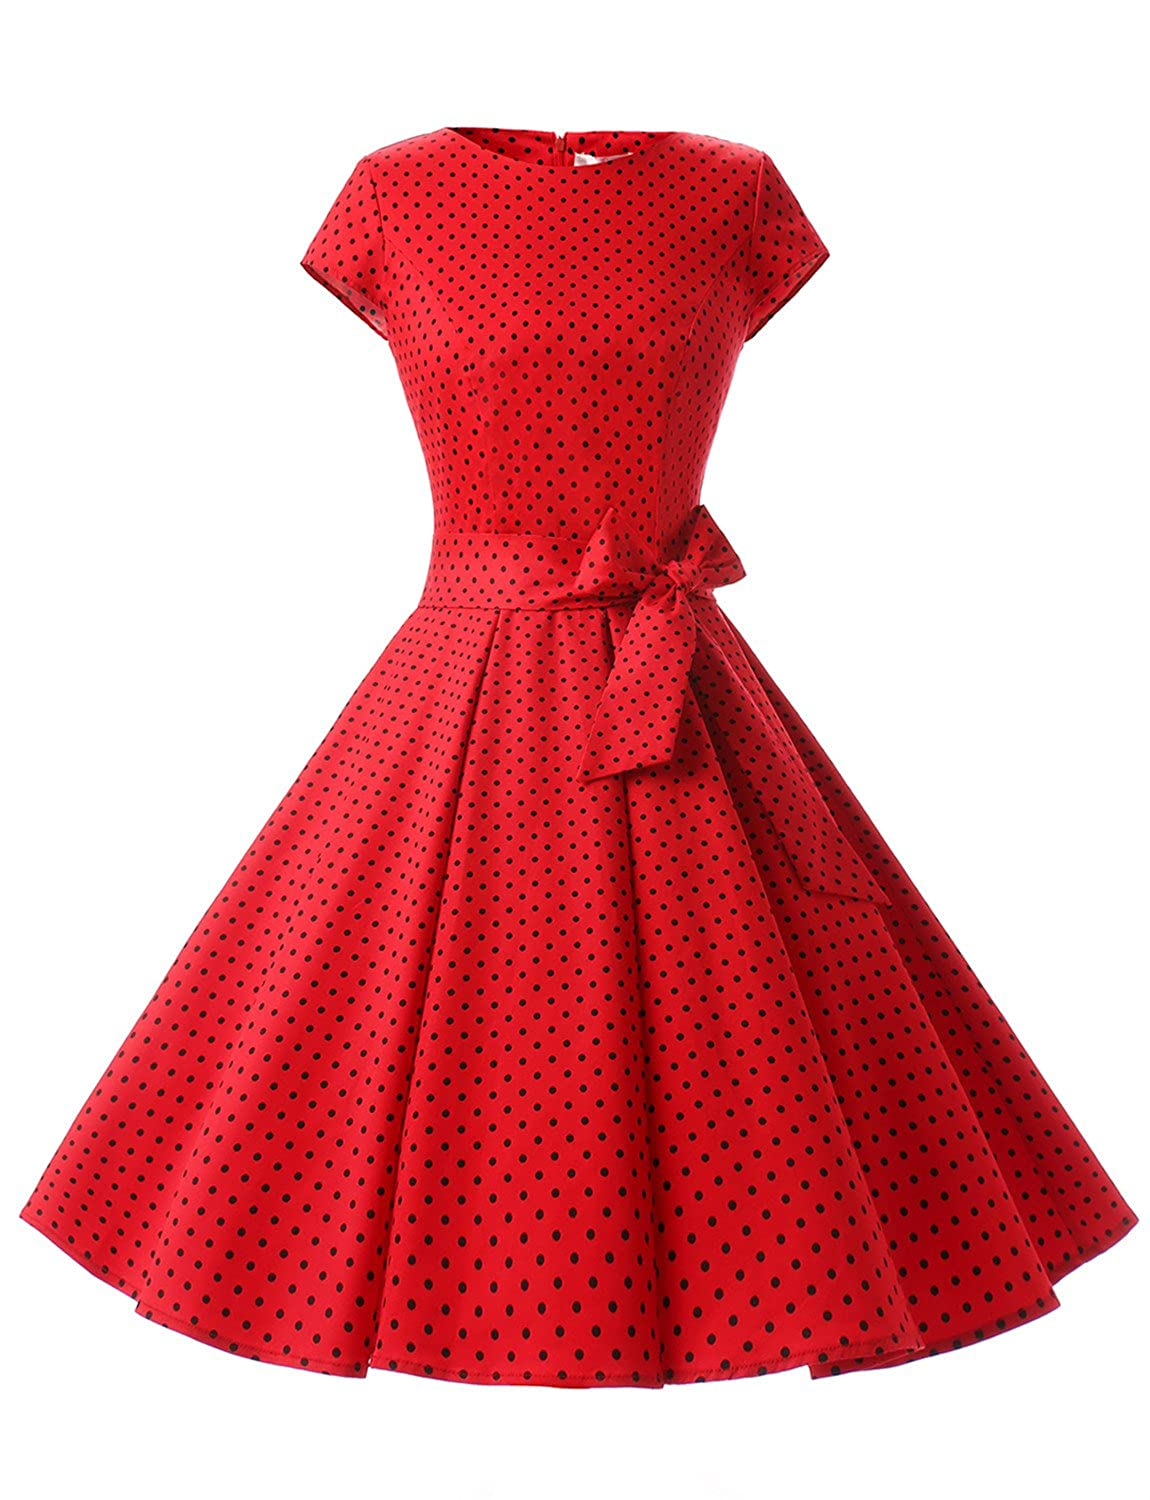 Vintage Polka Dot Dresses – Ditsy 50s Prints Dressystar Women Vintage 1950s Retro Rockabilly Prom Dresses Cap-sleeve $27.69 AT vintagedancer.com